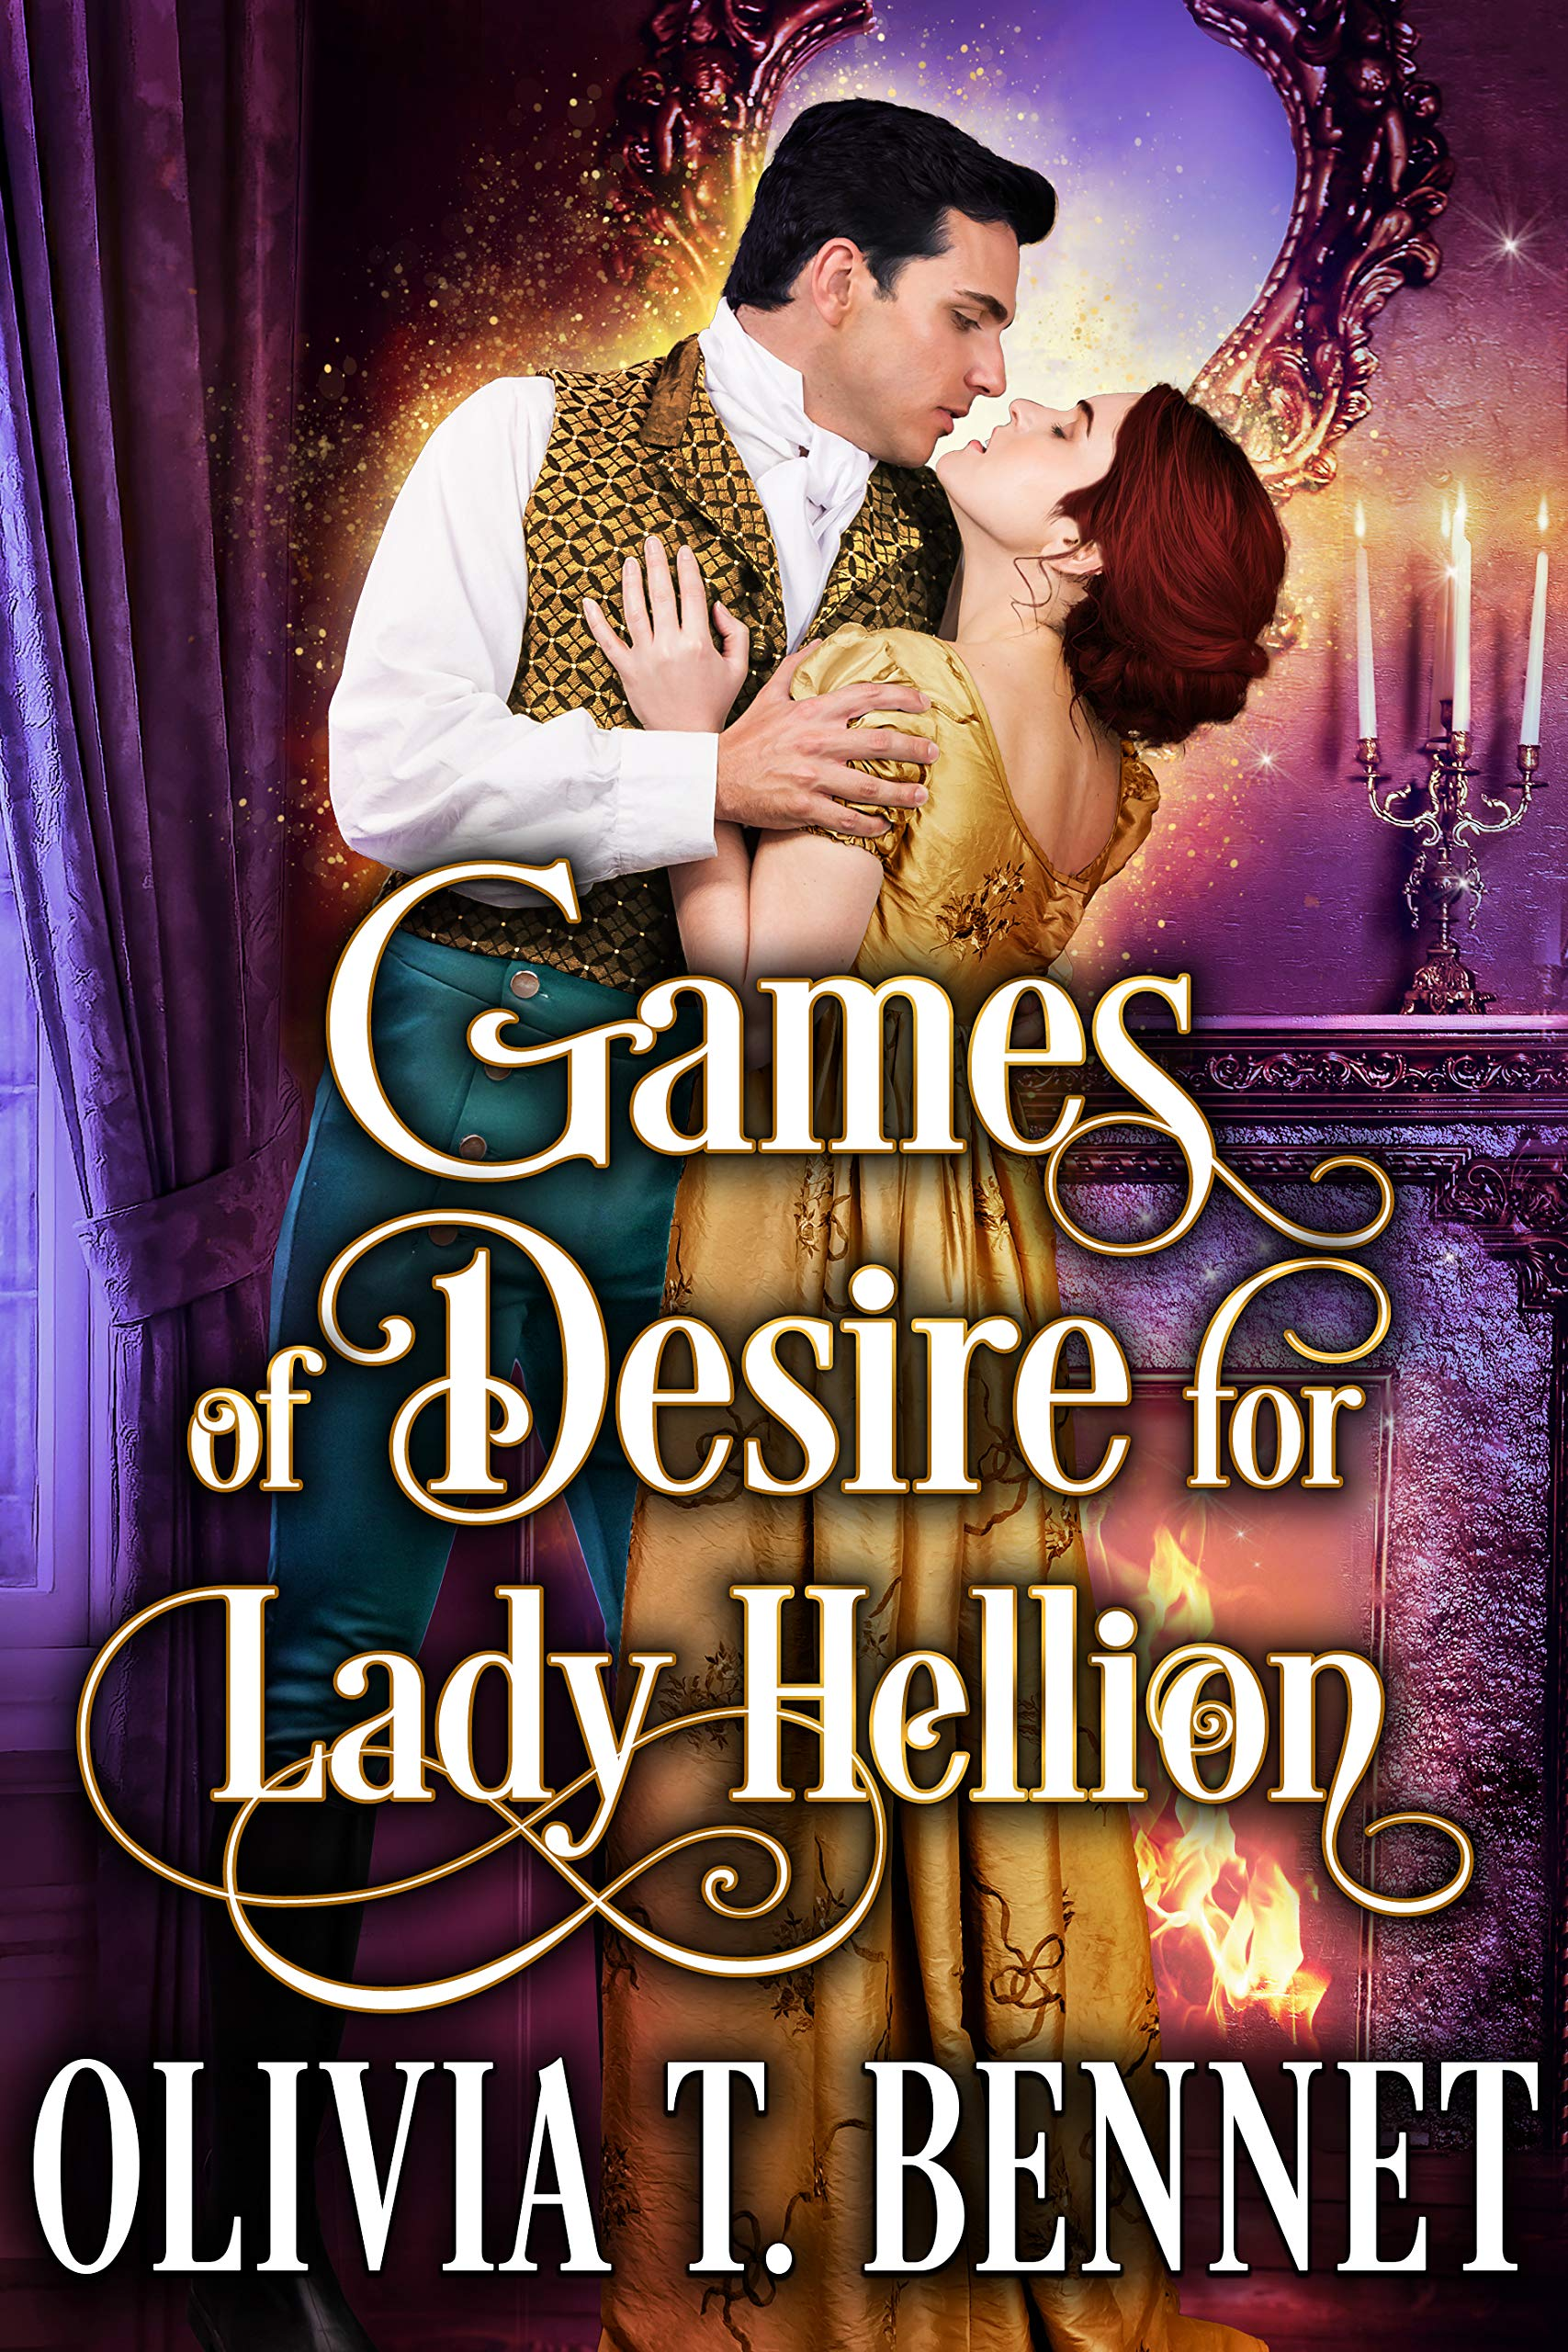 Games of Desire for Lady Hellion: A Steamy Historical Regency Romance Novel